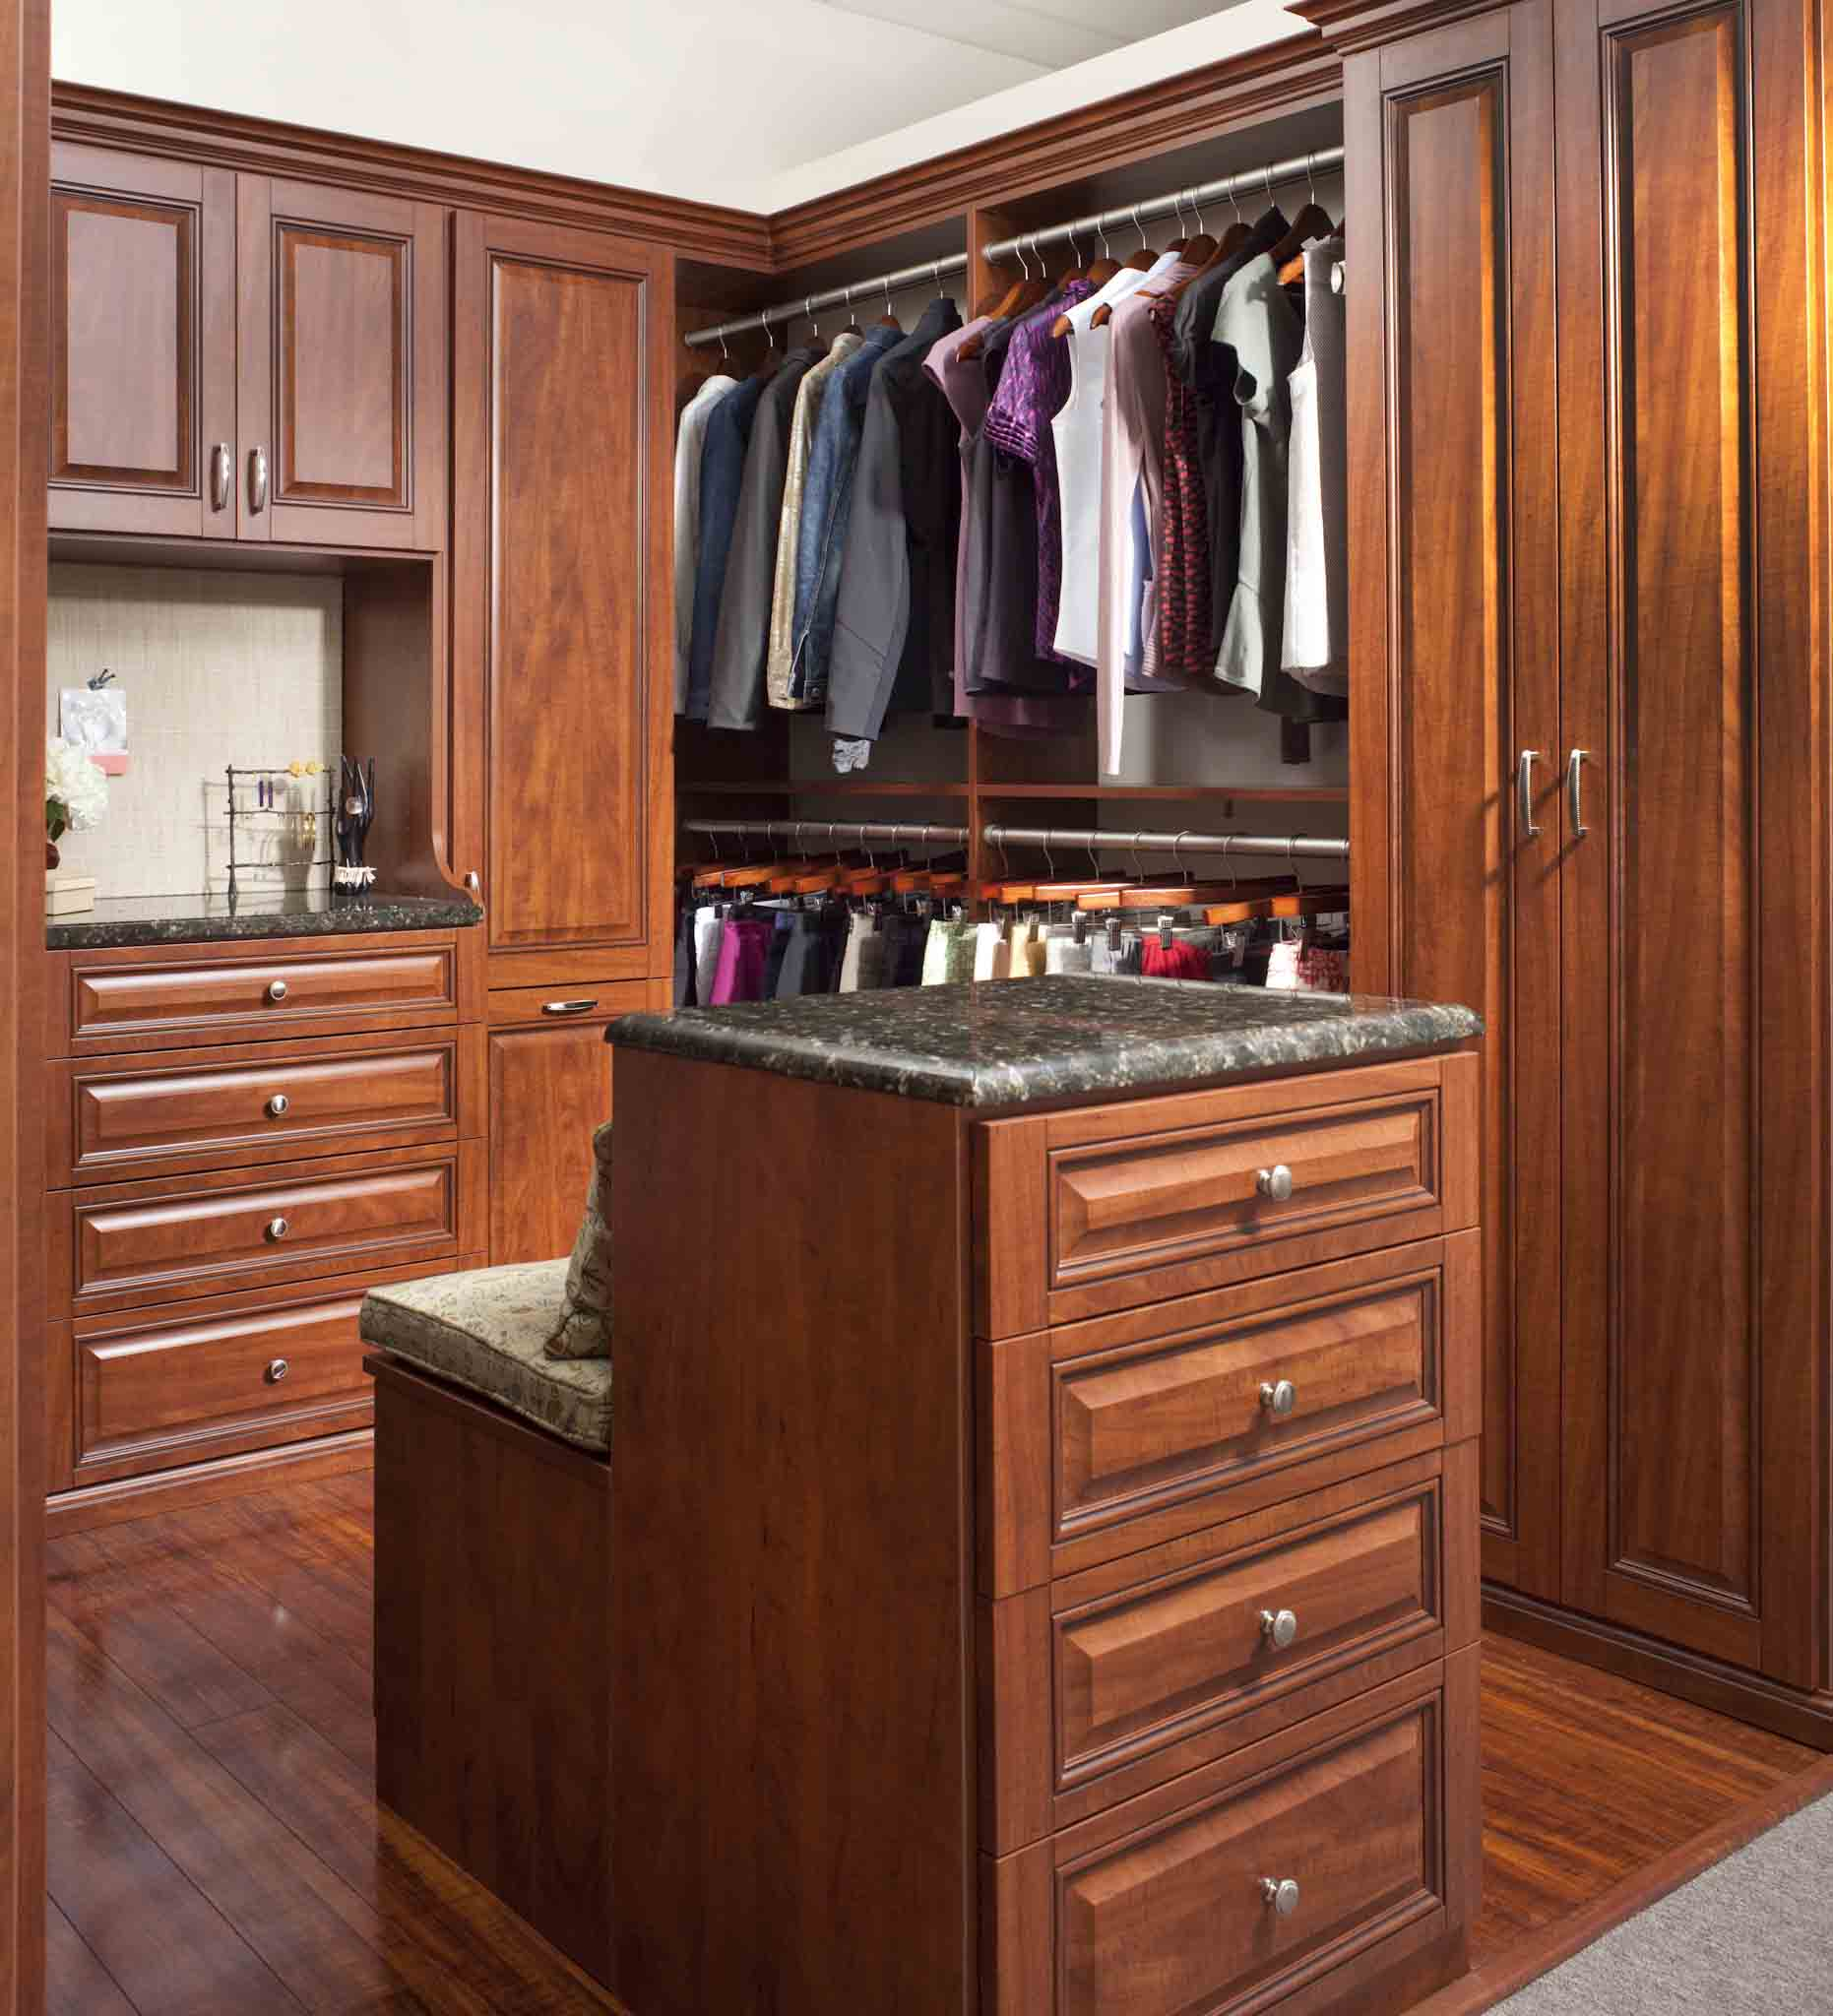 Organized closet system for her